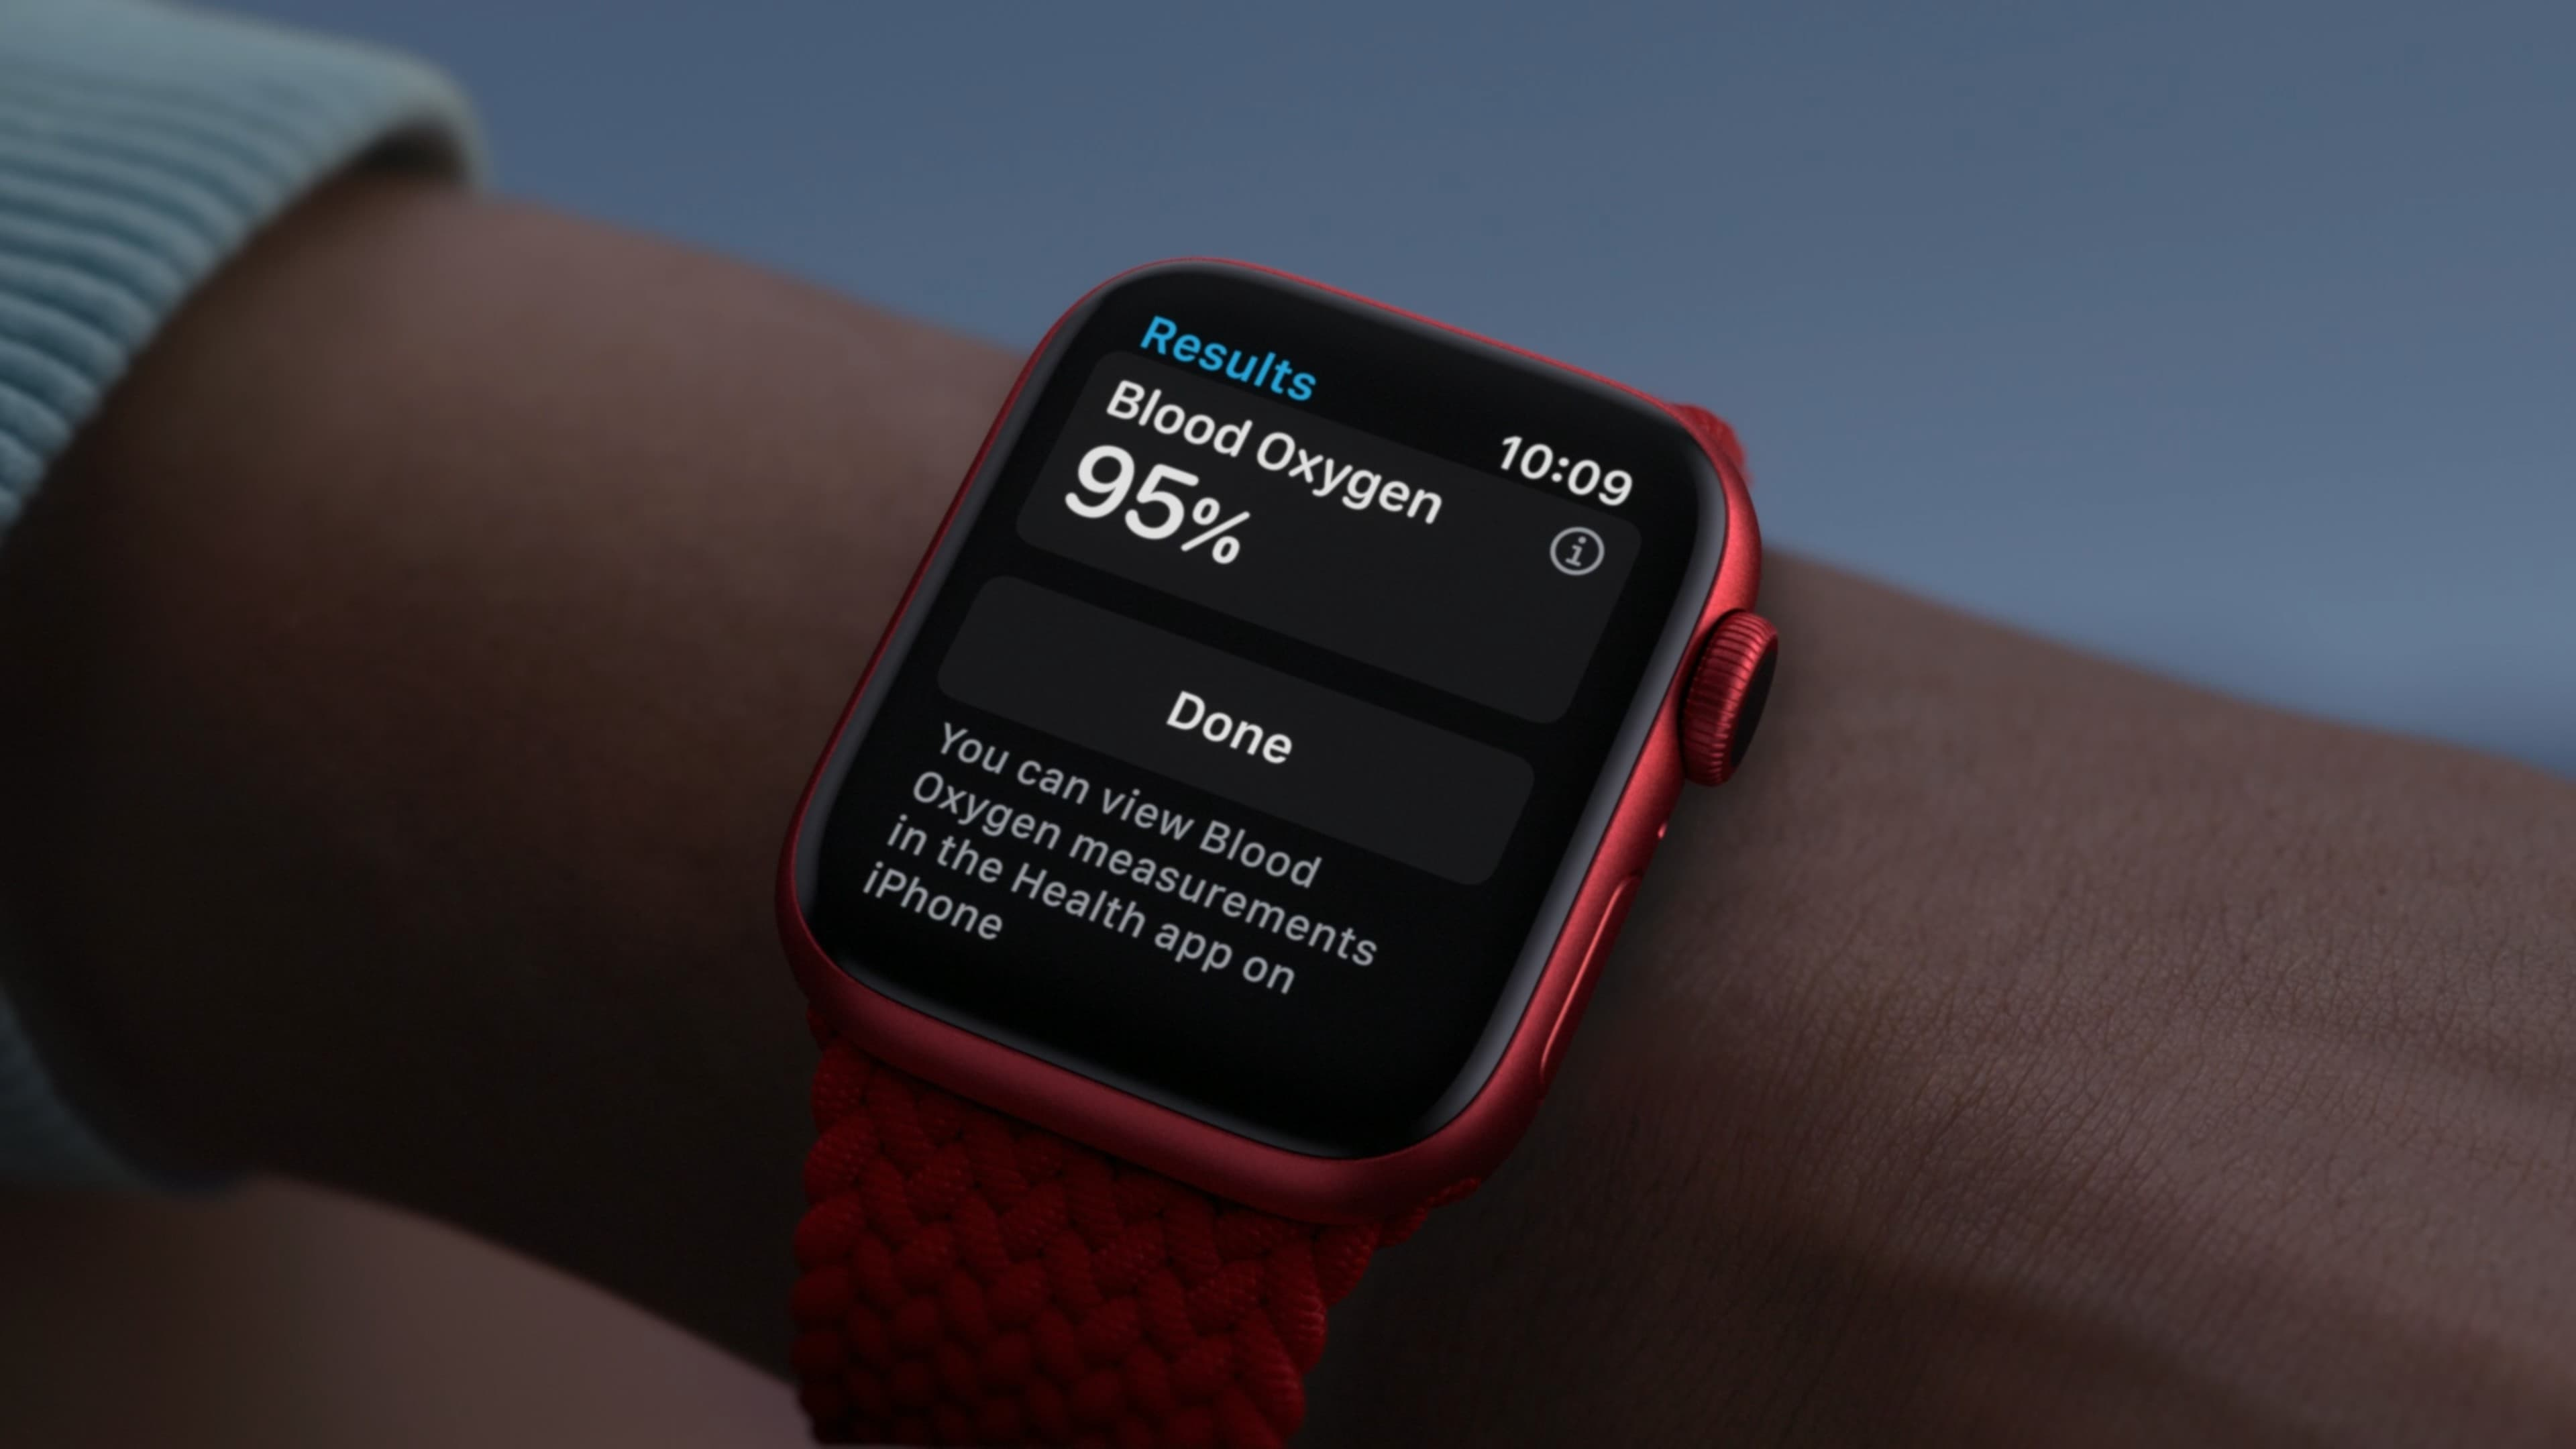 The Apple Watch Series 6 Blood Oxygen app lets you measure oxygen saturation in just 15 seconds.